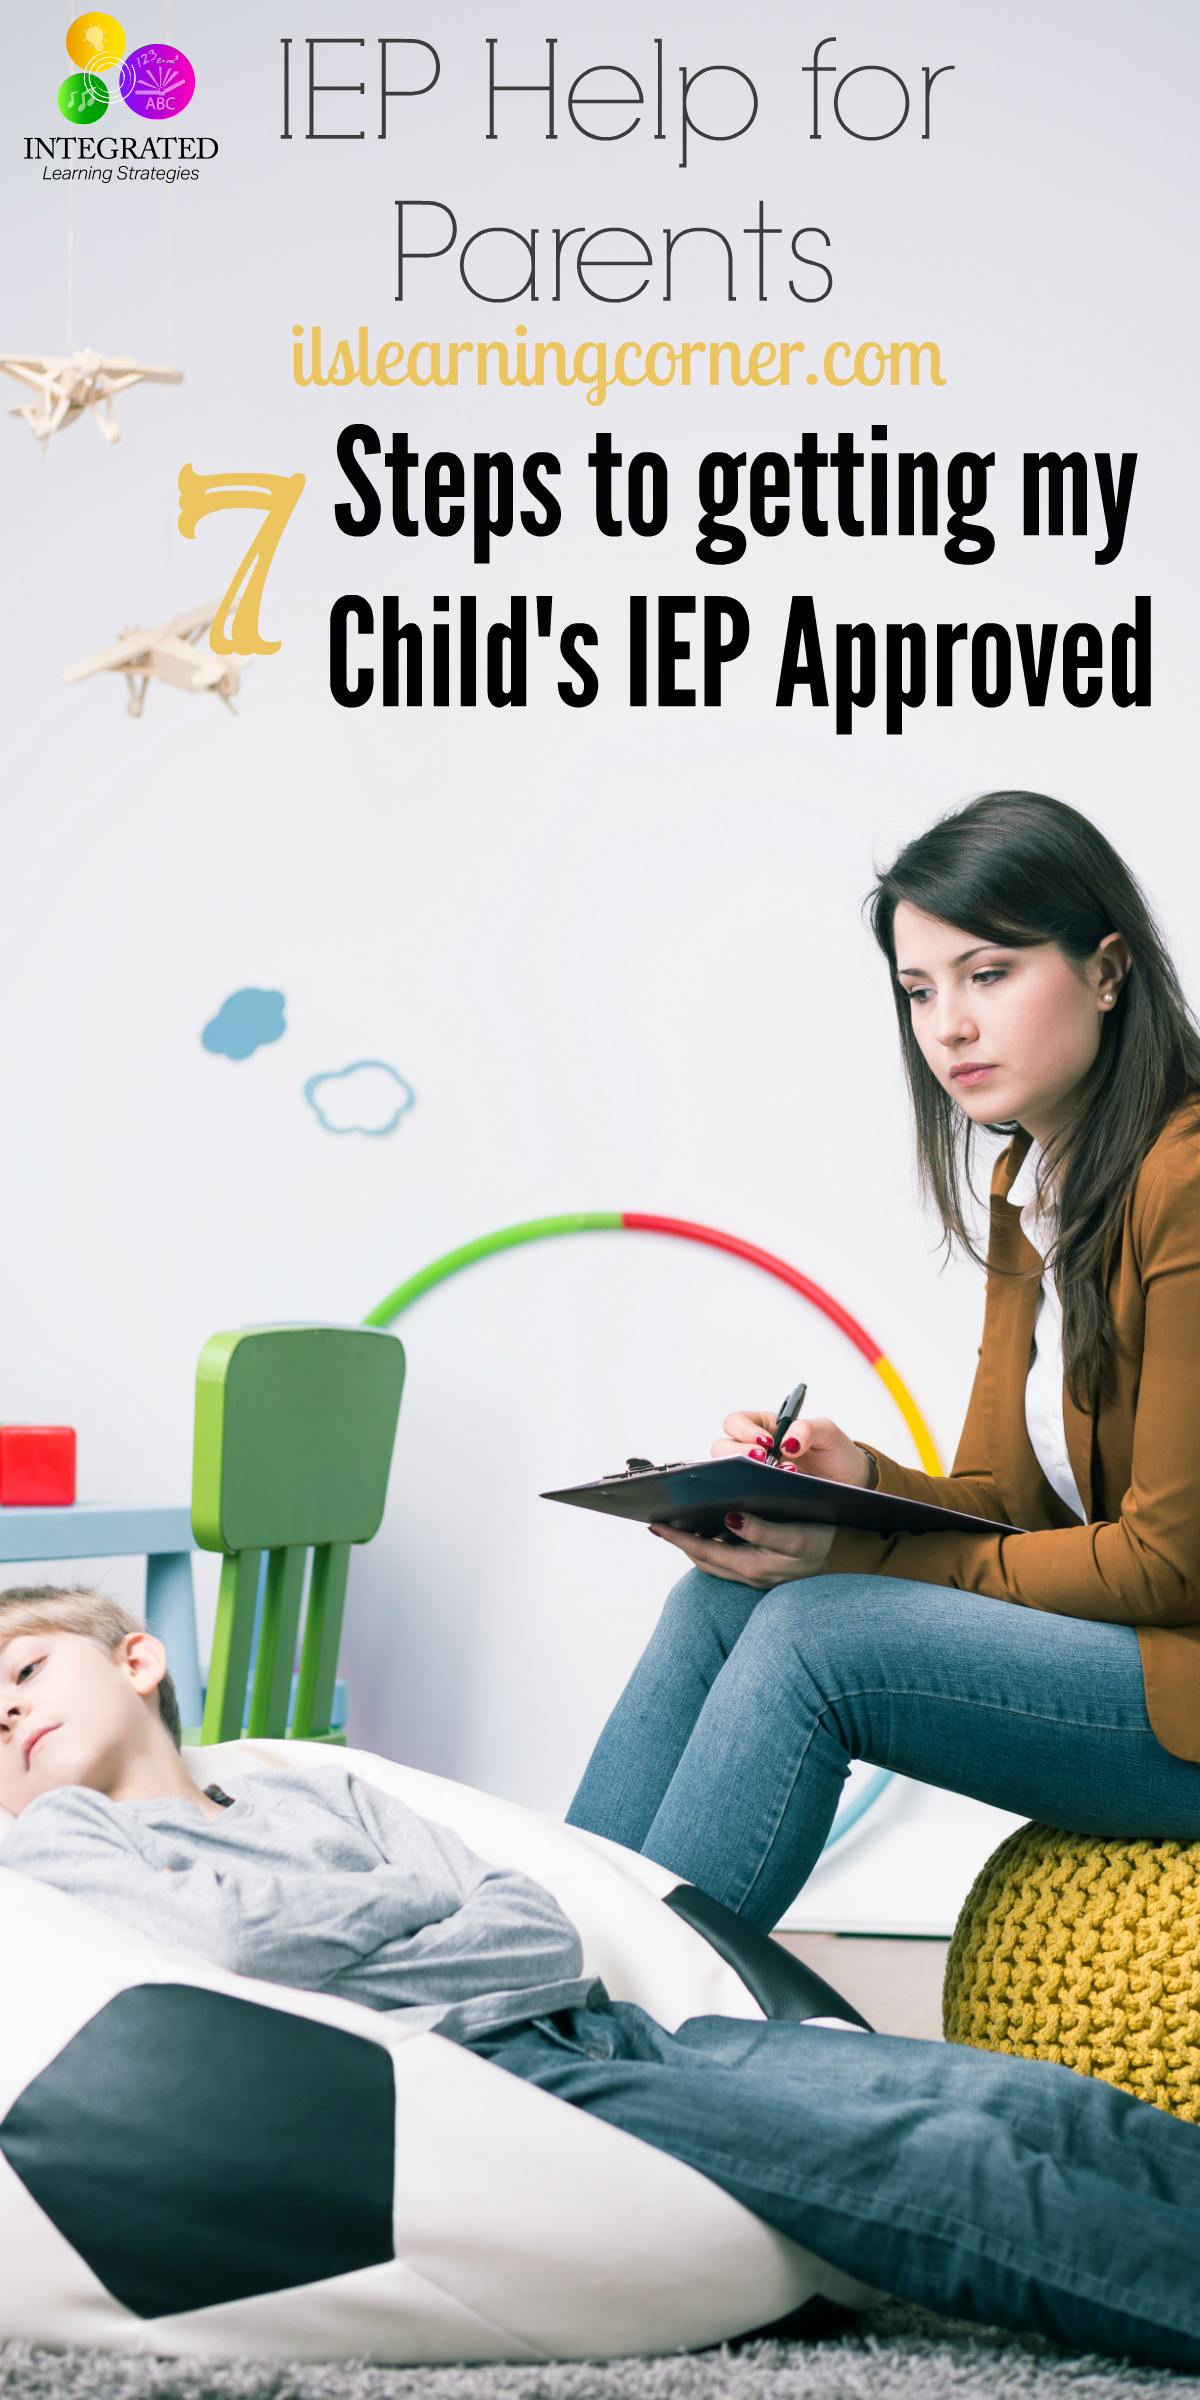 Iep Assistance Does My Child Qualify For An And What Are The Steps To